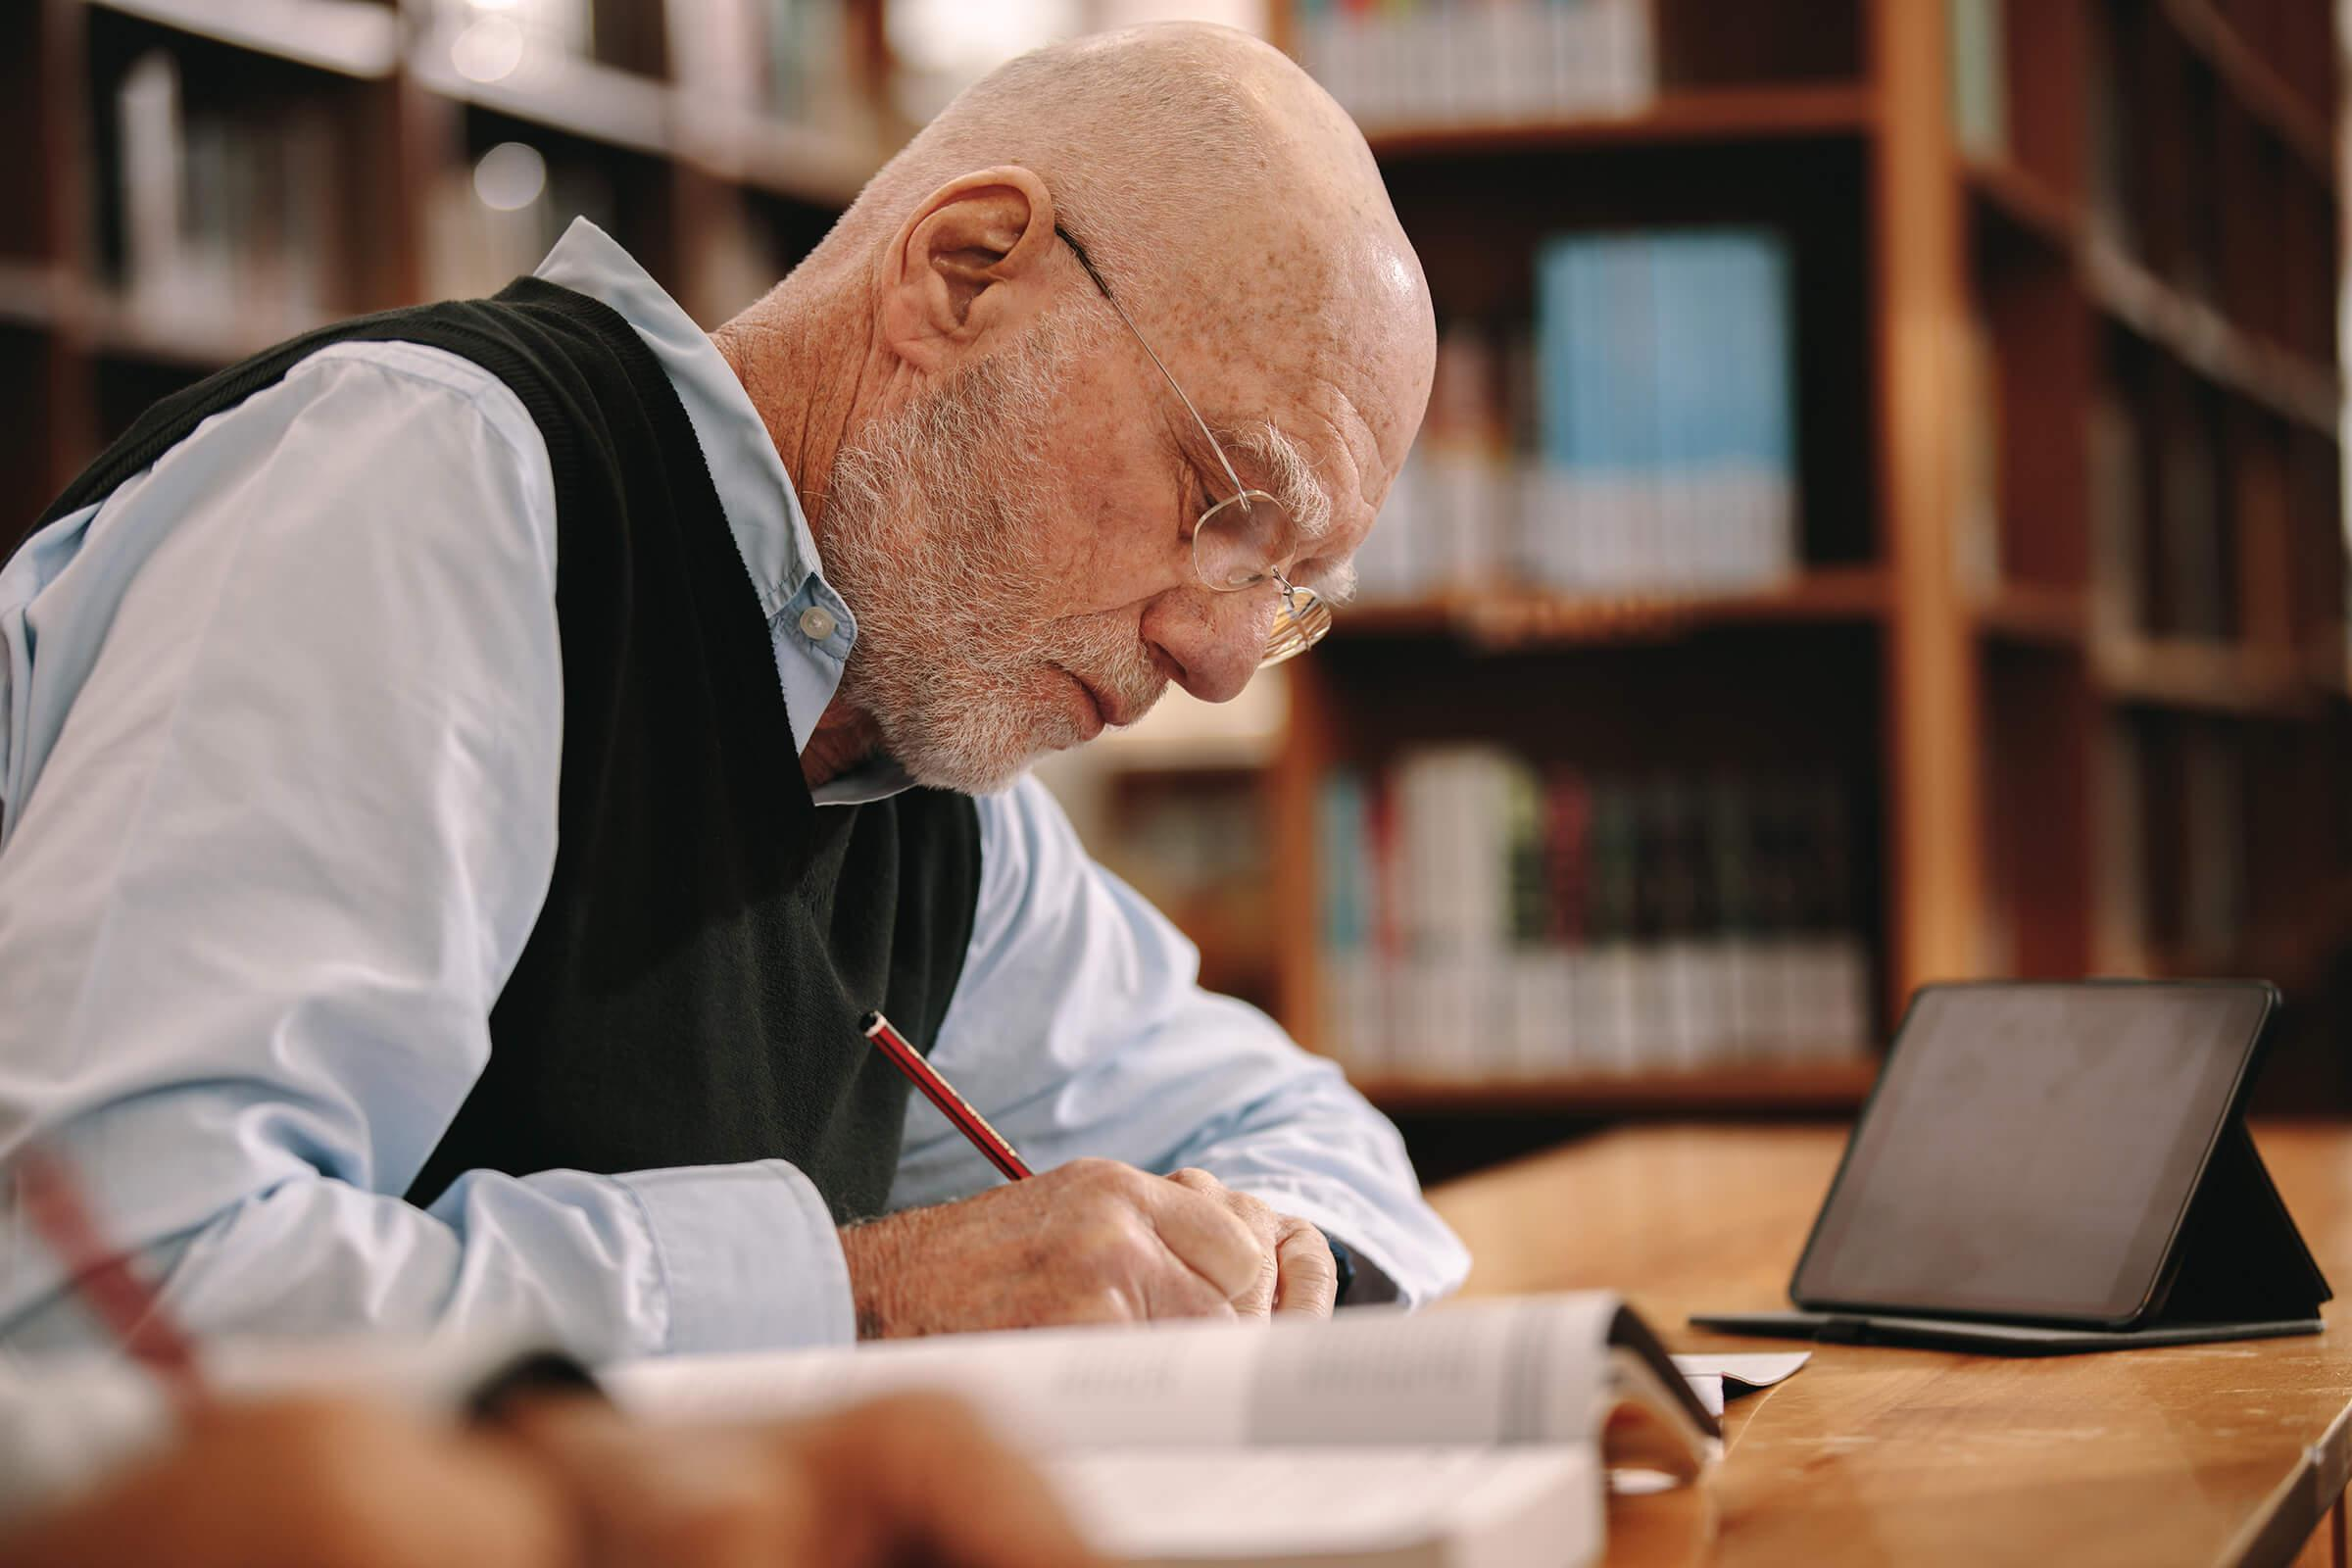 a man sitting at a table using a laptop computer